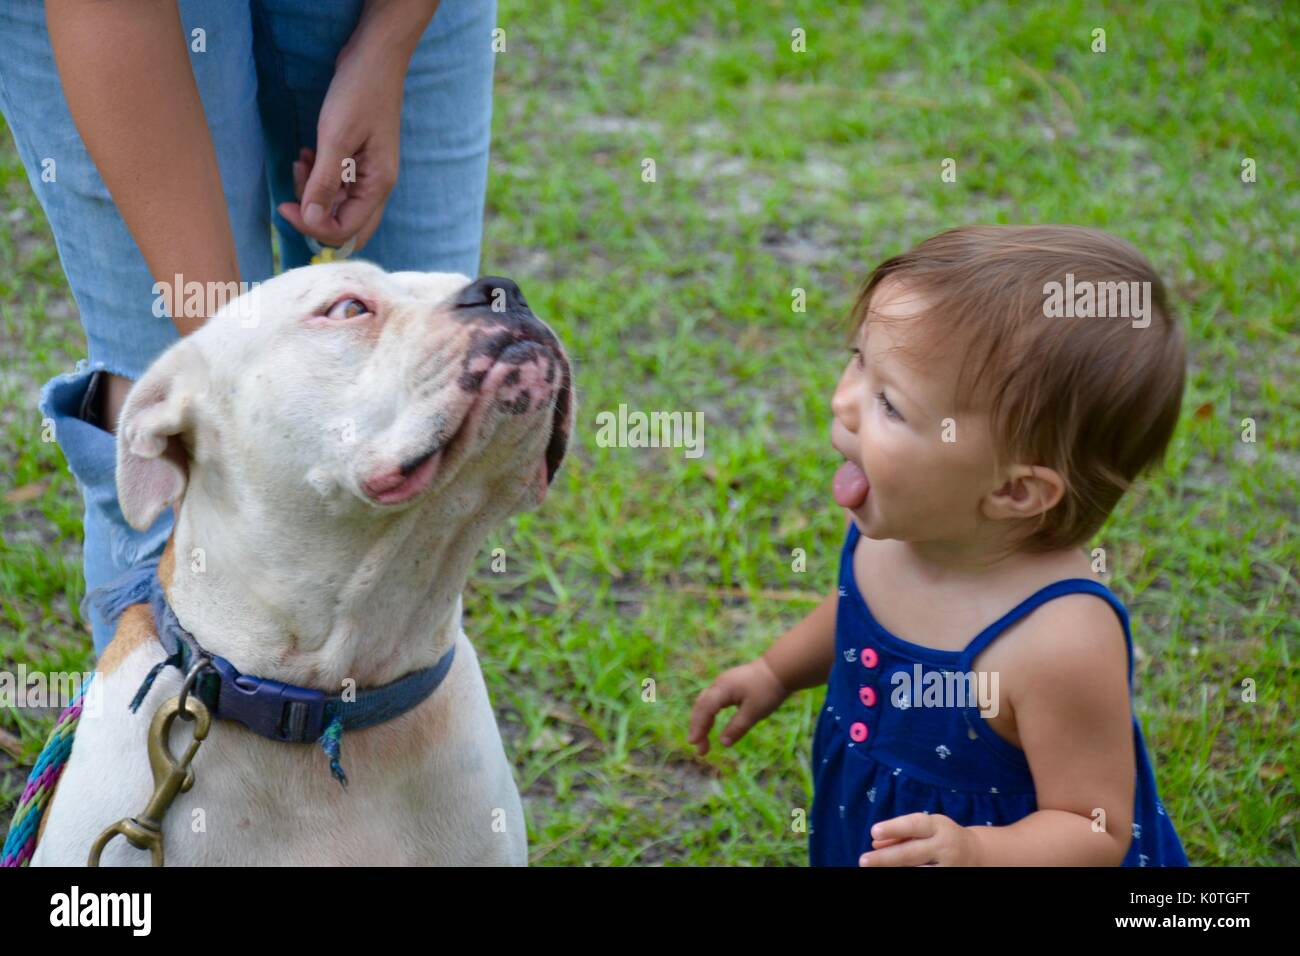 toddler with her tongue out to kiss her pet dog because thats how the dog kissed her. - Stock Image